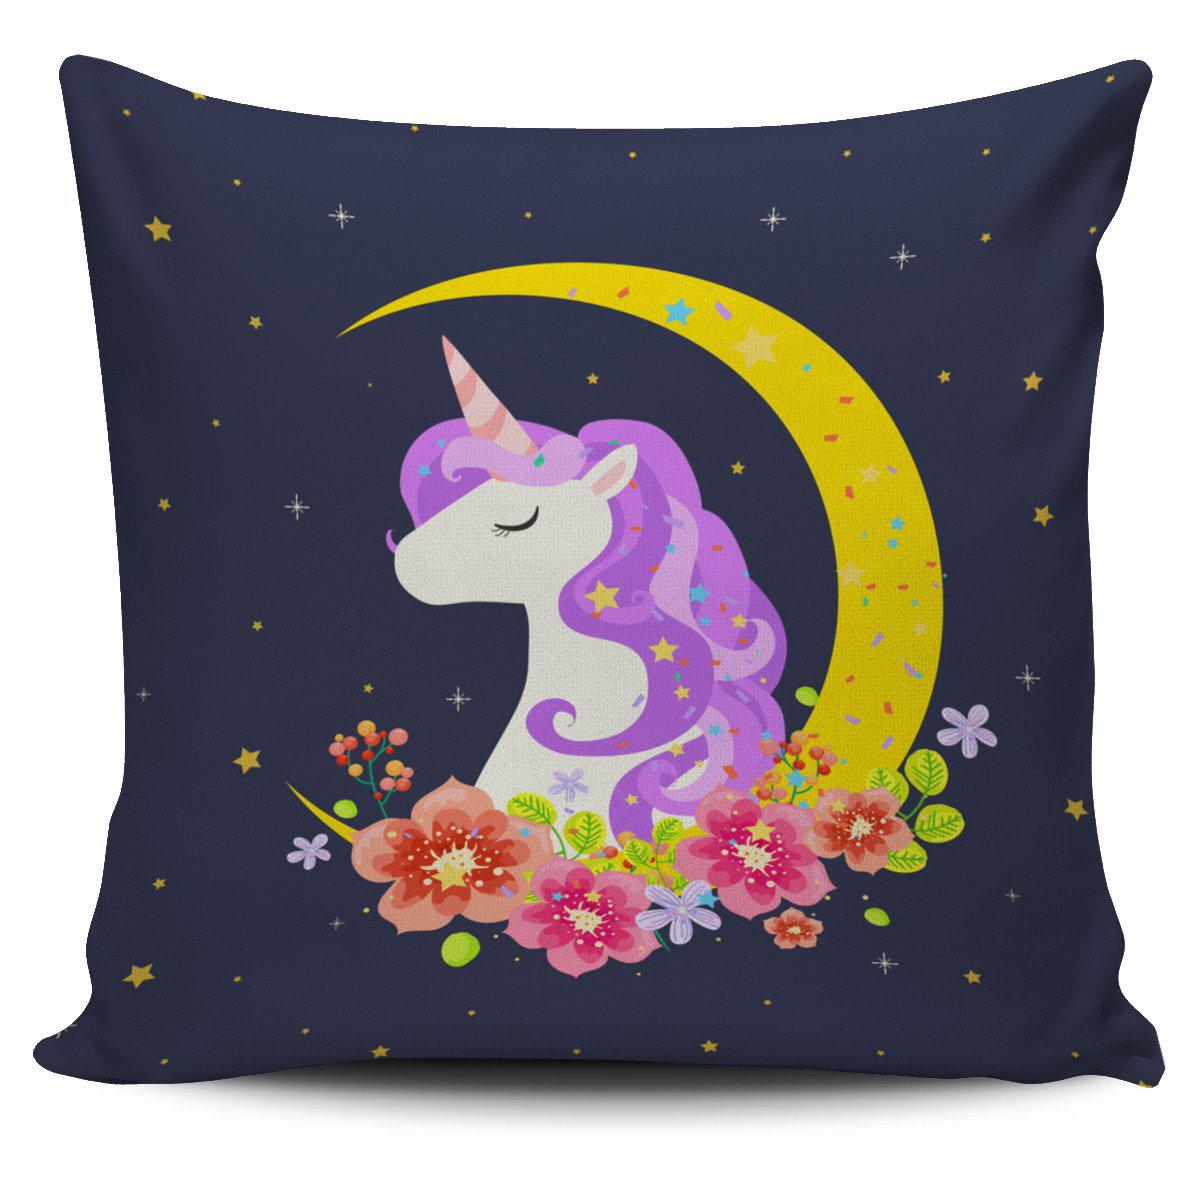 Shopeholic:Dark Blue Starry Night Crescent Moon Unicorn Pillow Cover